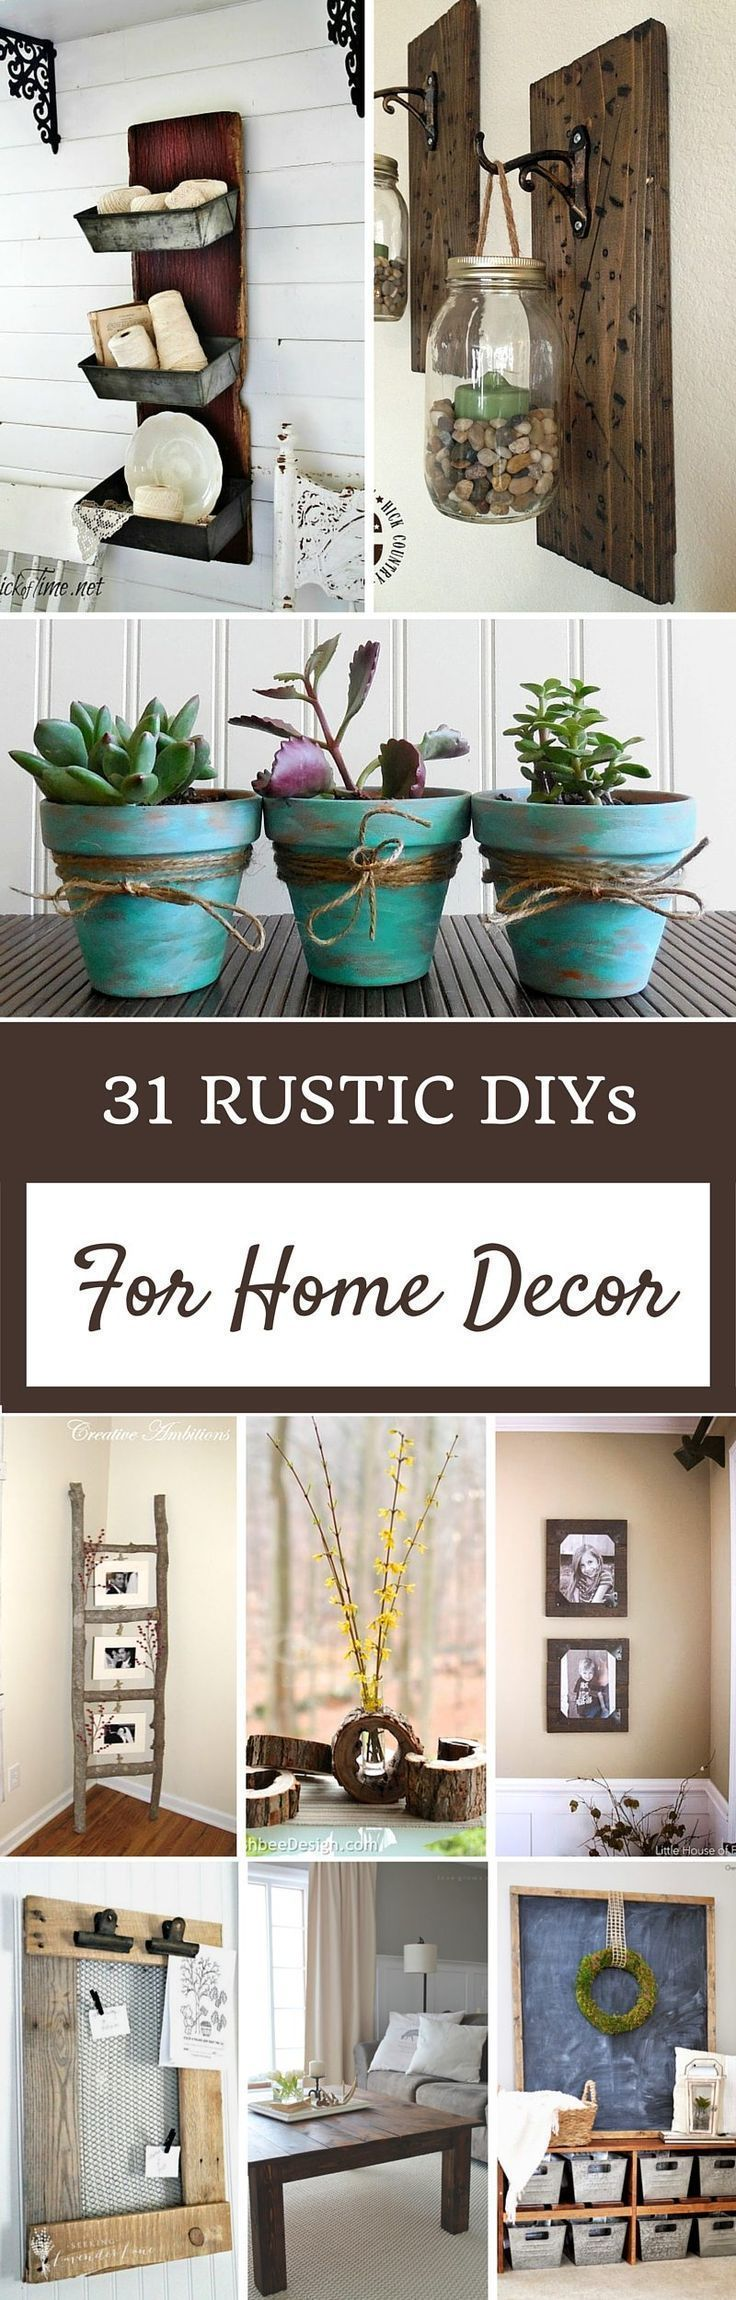 31 rustic diy home decor projects create rustic decor and house 31 rustic diy home decor projects create these farmhouse cottage do it yourself projects solutioingenieria Image collections